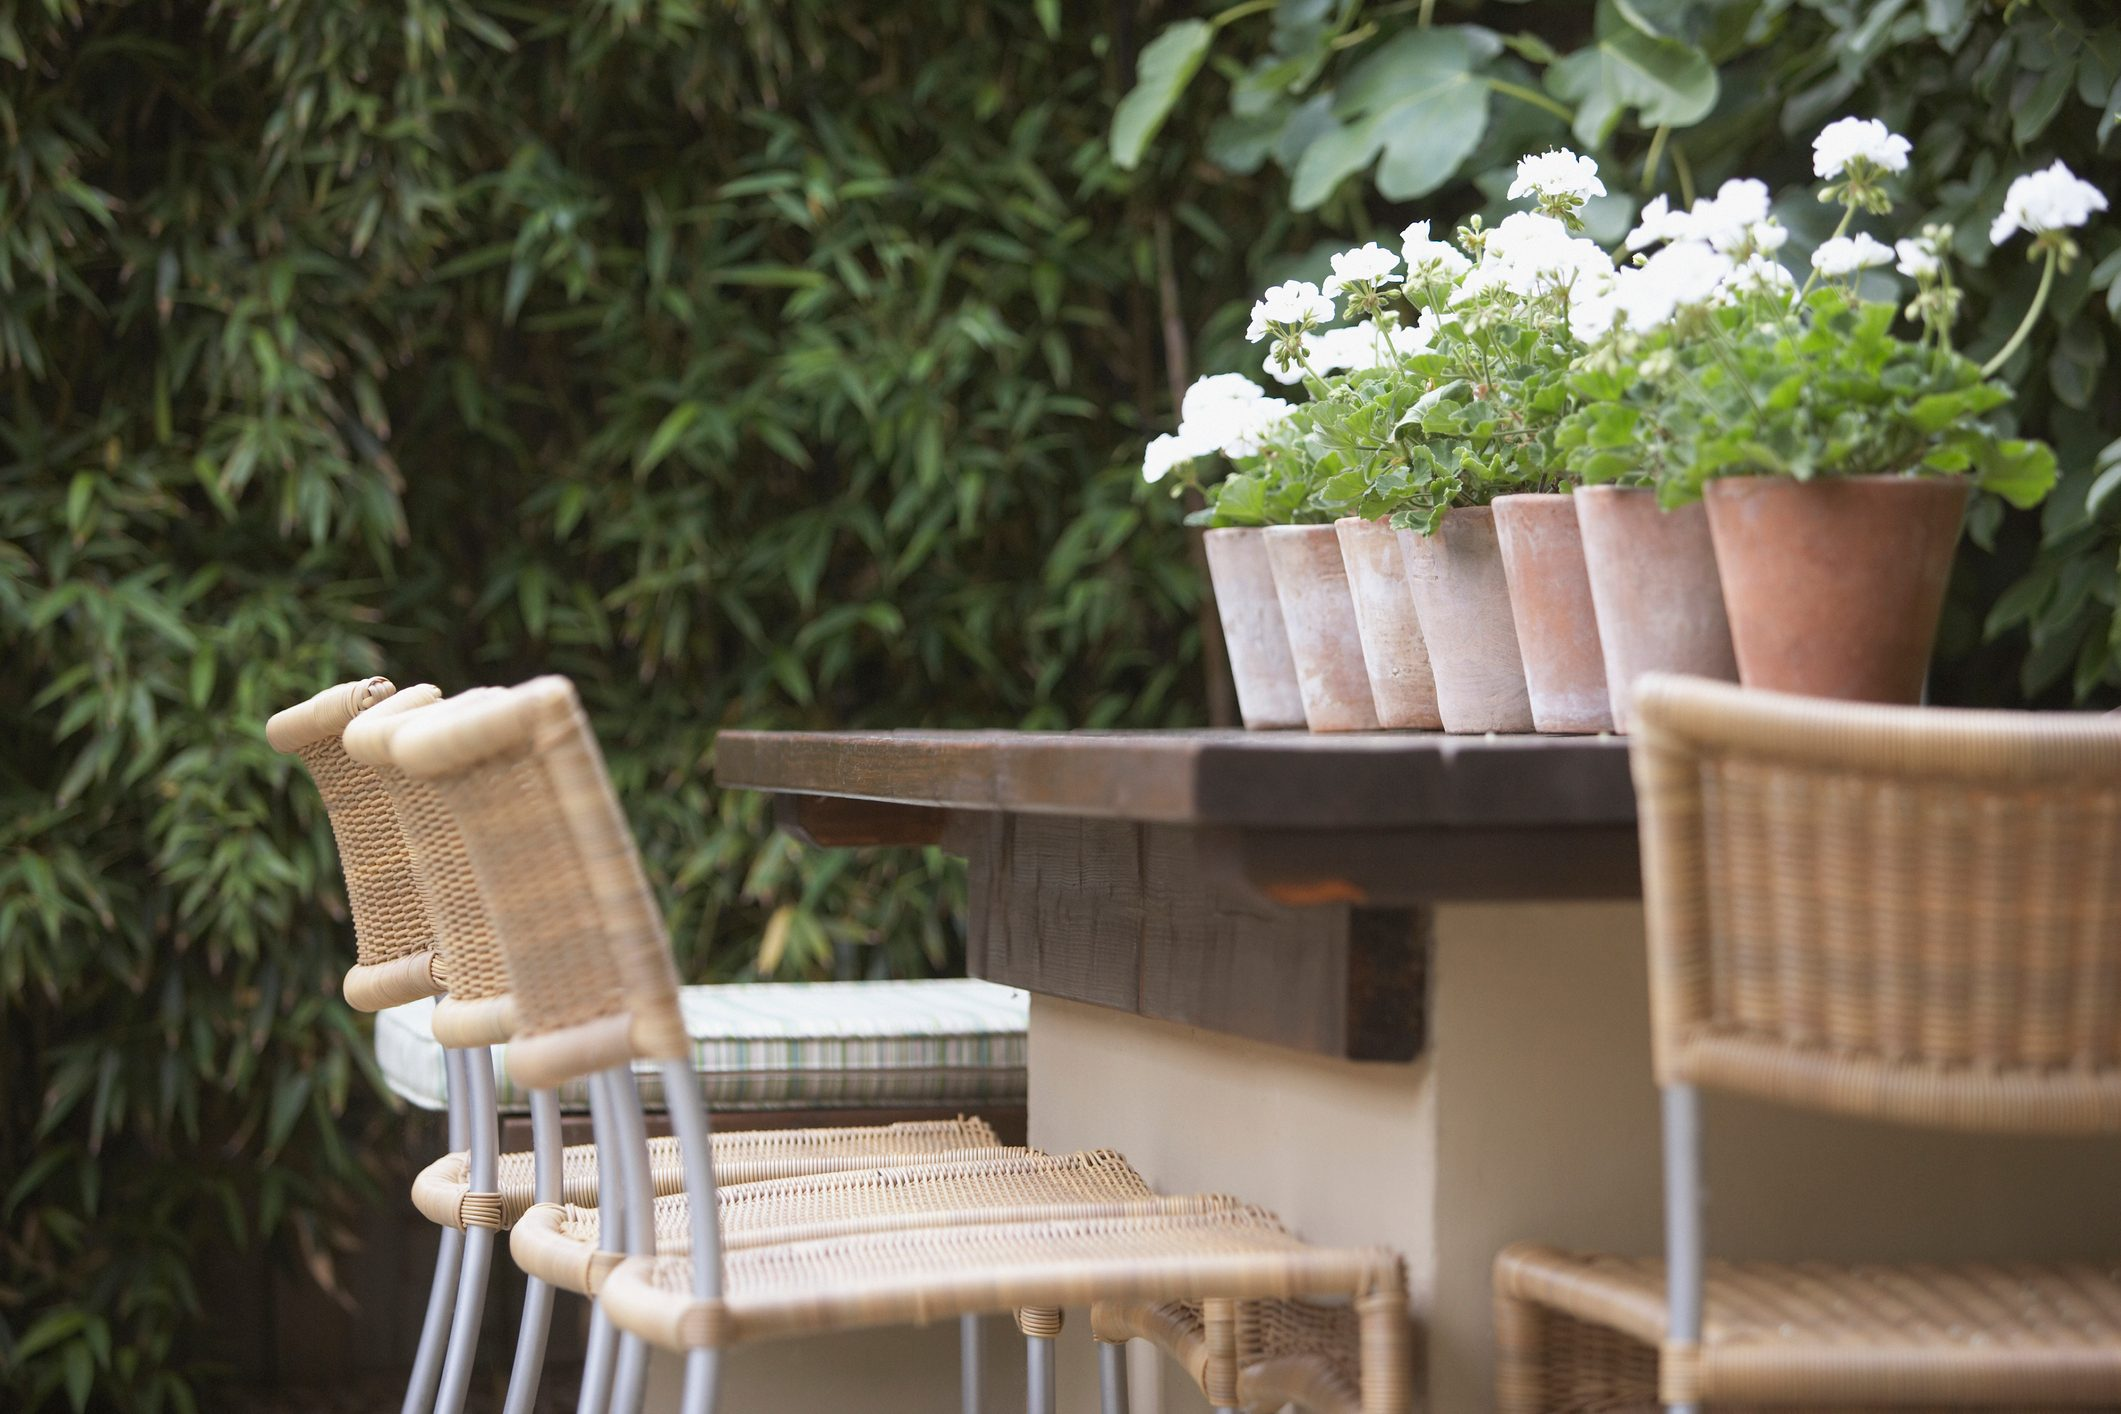 Outdoor bar with potted plants on it